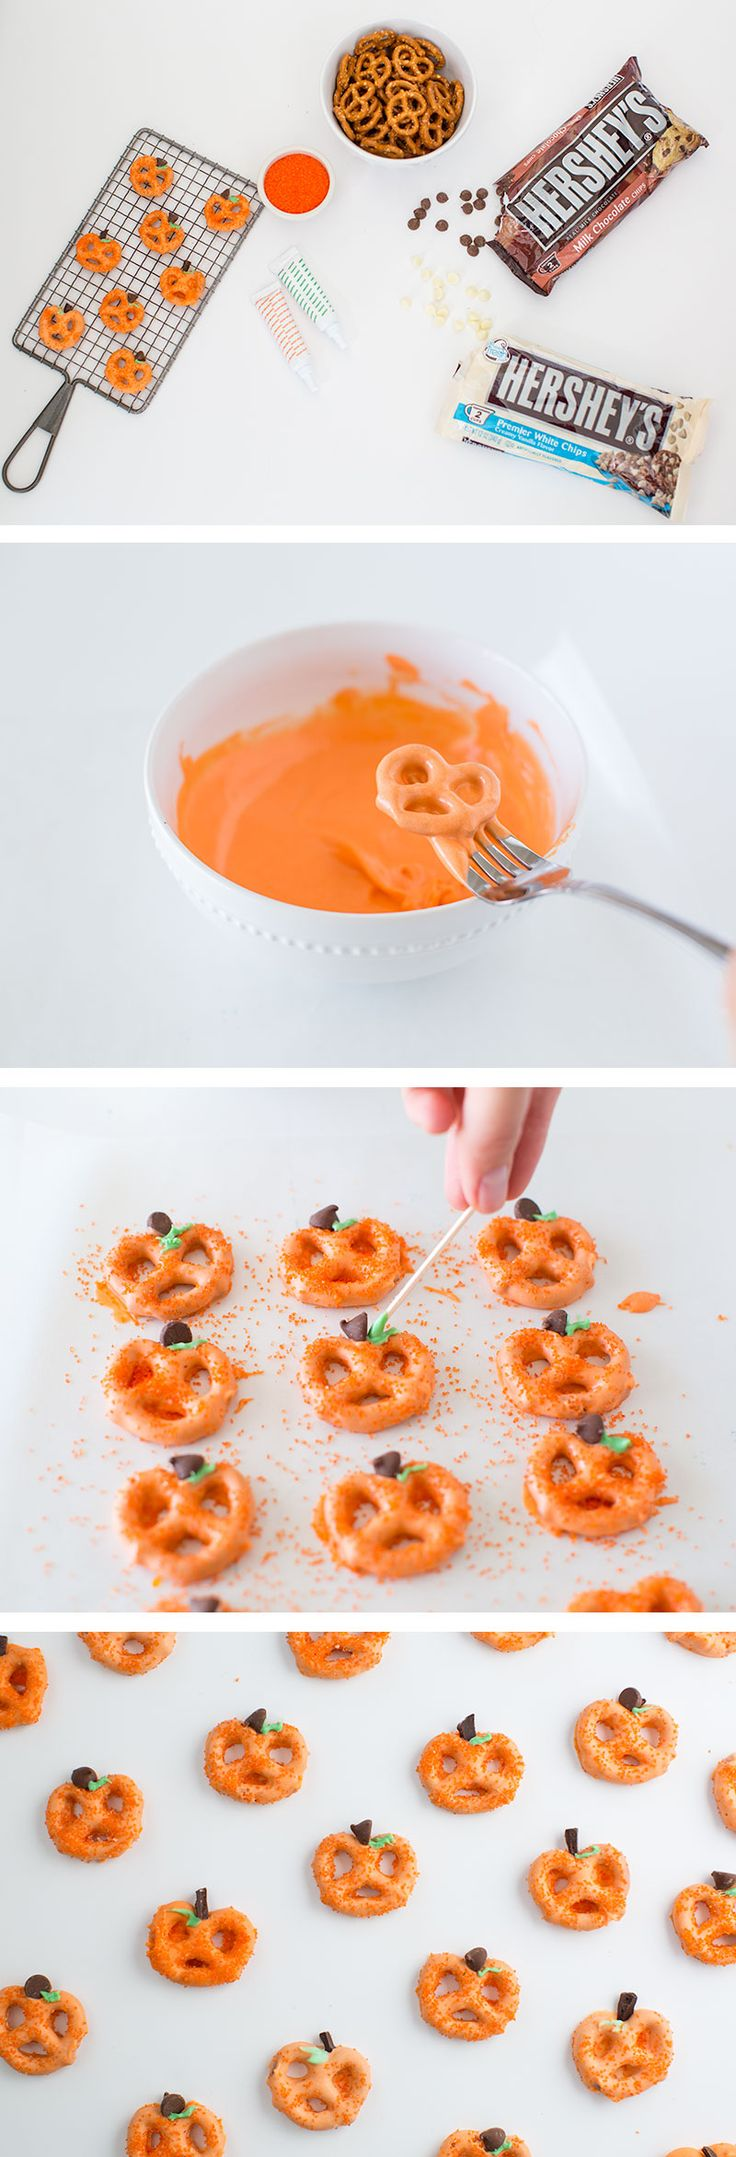 Quick, easy, and delicious Chocolate Covered Pretzel Pumpkins make the perfect family-friendly fall project and snack!